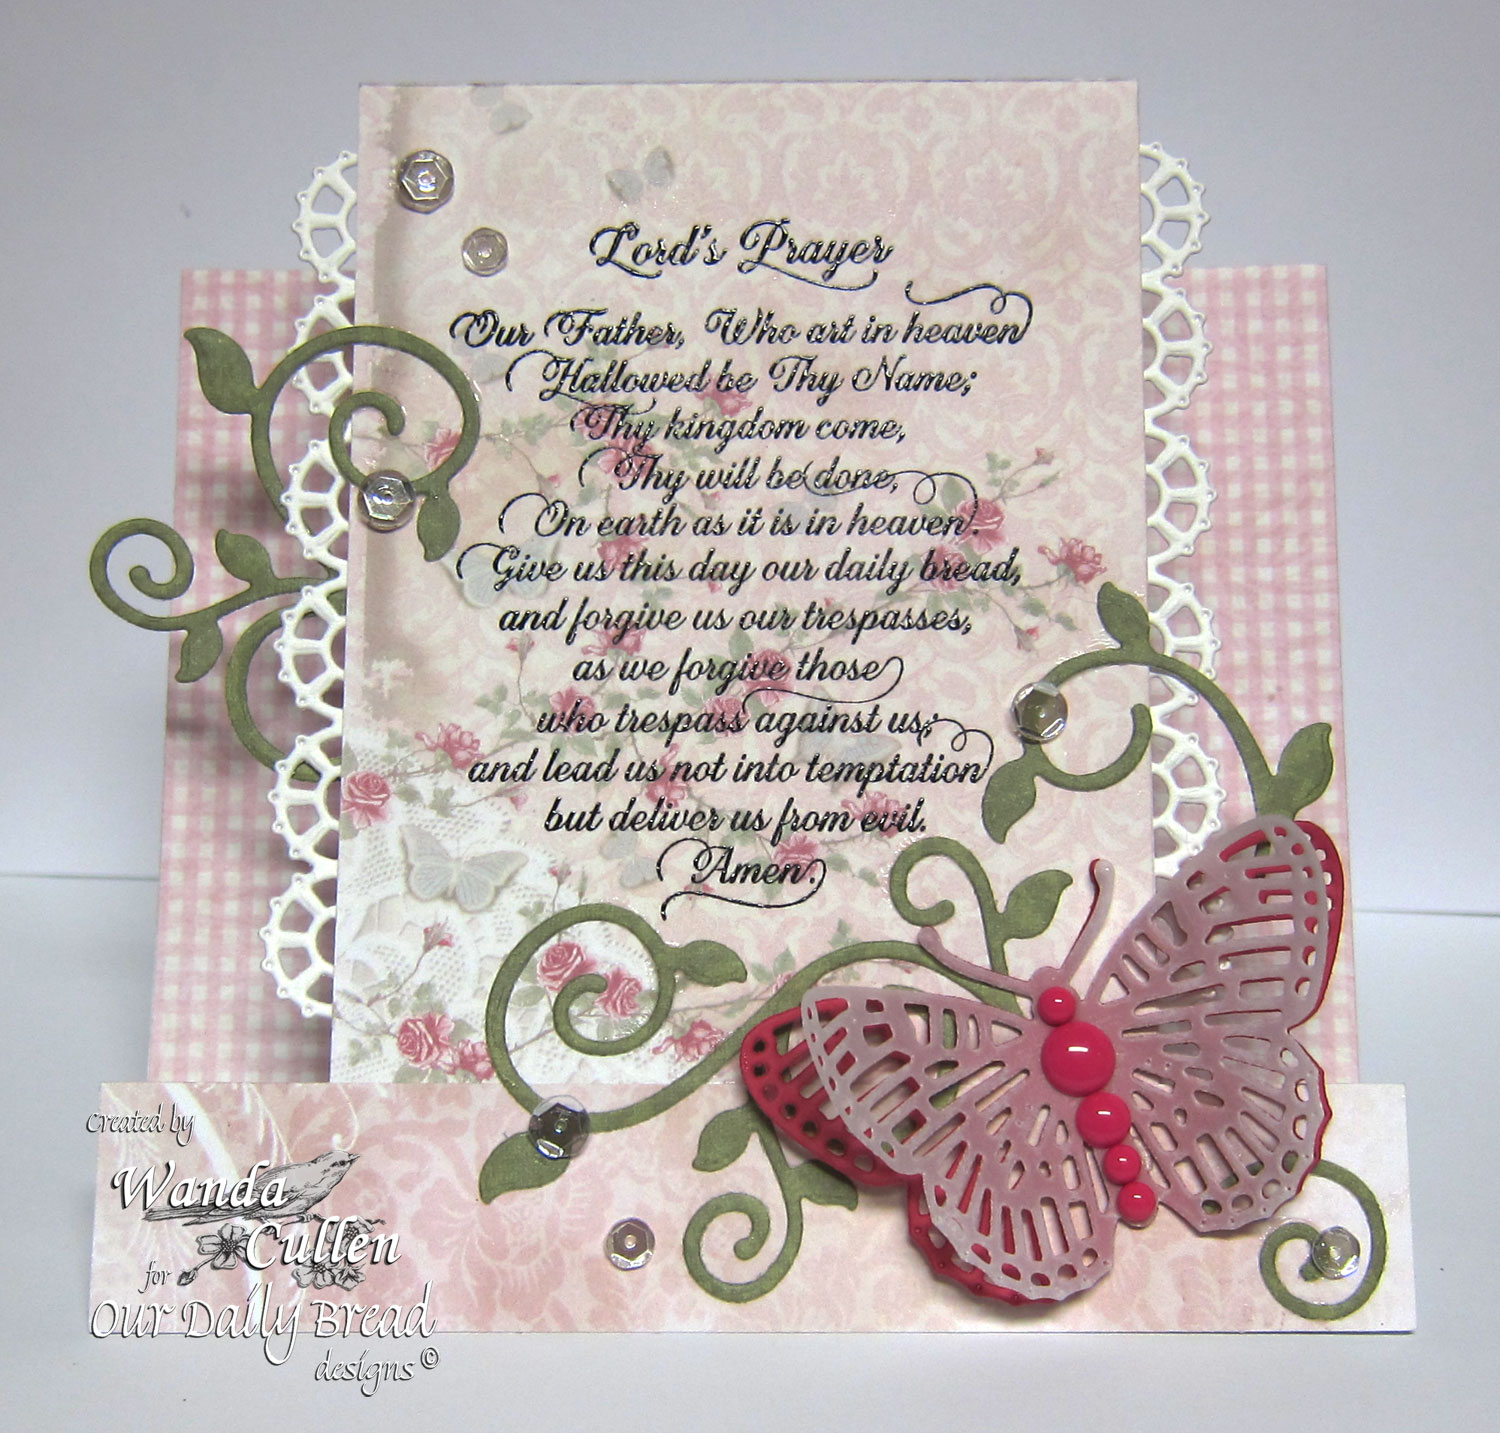 Stamps - Our Daily Bread Designs Lord's Prayer Script, ODBD Custom Dies: Layered Lacey Squares, Fancy Fritillary, Fancy Foliage, ODBD Shabby Rose Paper Collection, ODBD Fun and Fancy Fold - Center Step